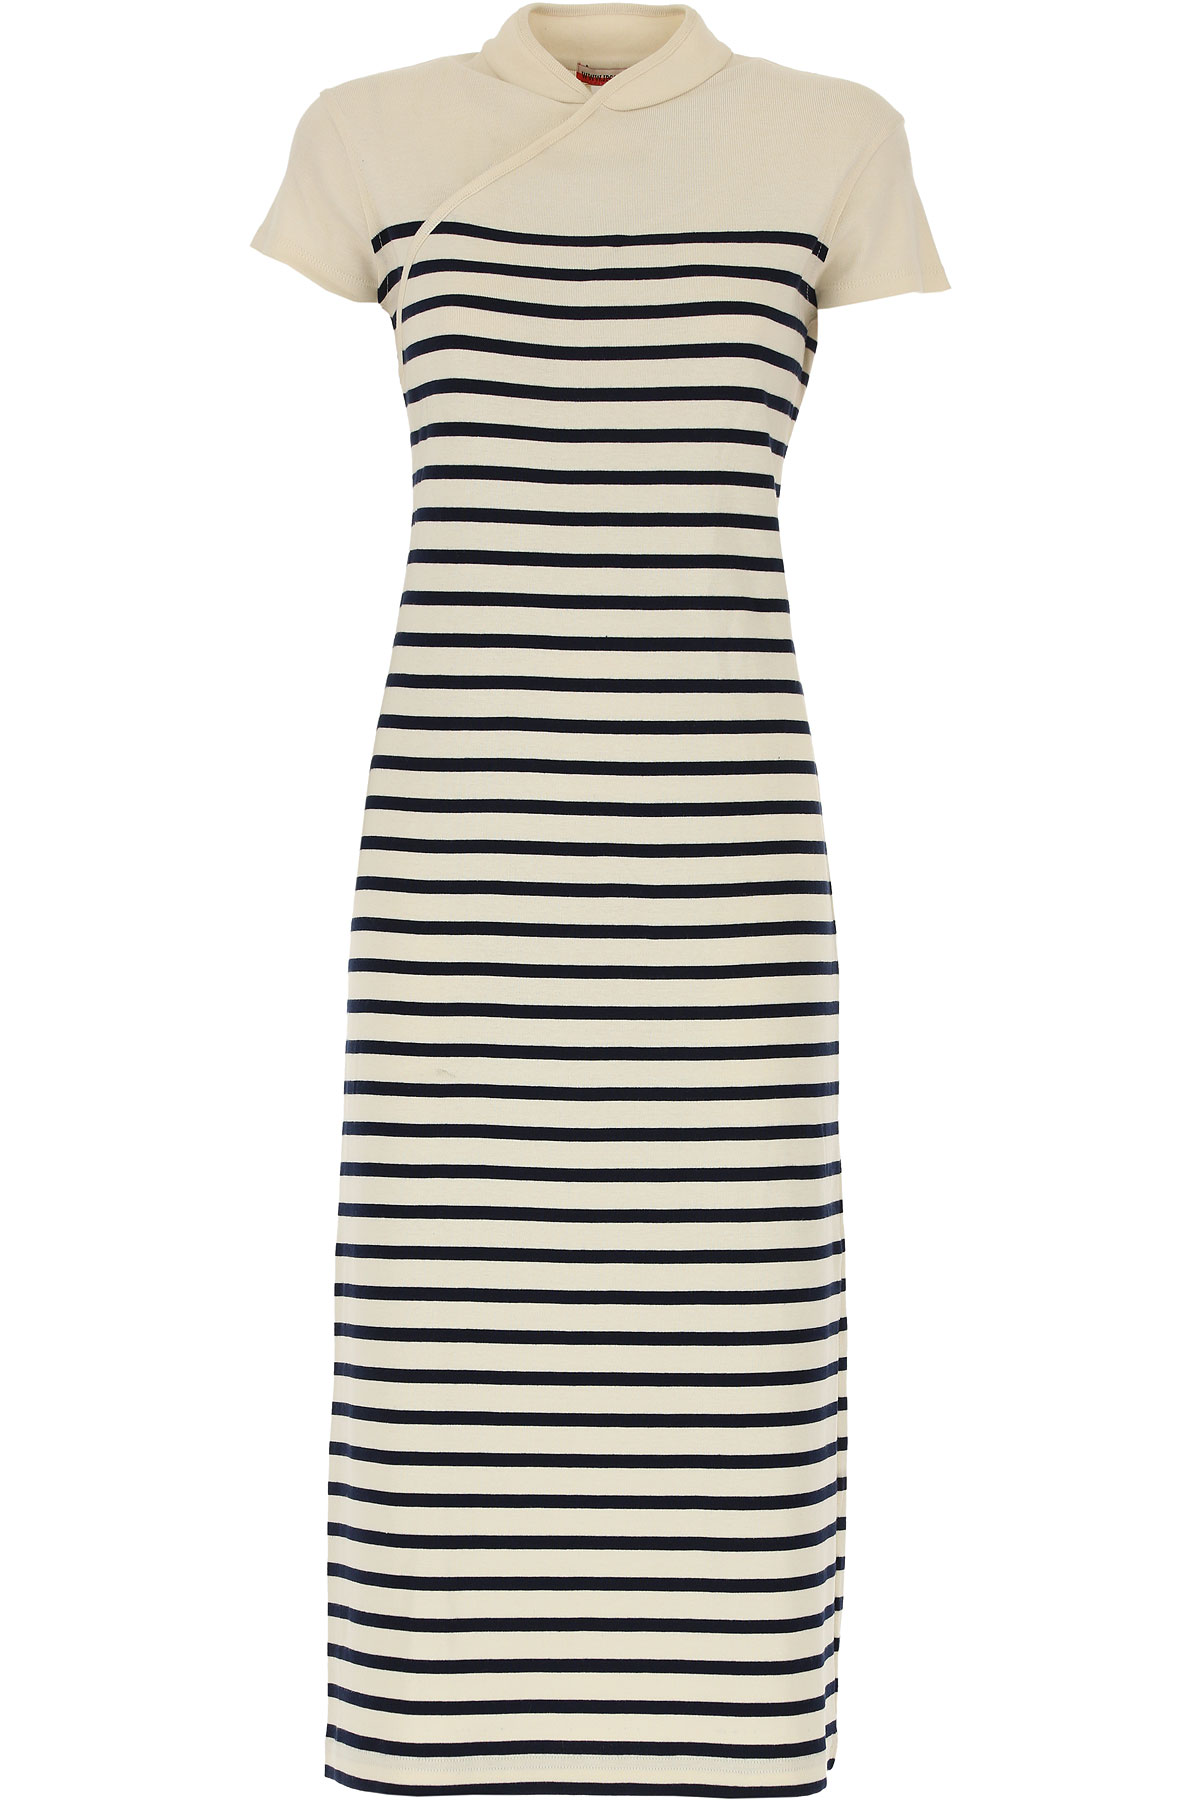 Image of J.P. Gaultier Dress for Women, Evening Cocktail Party, White, Cotton, 2017, 6 8